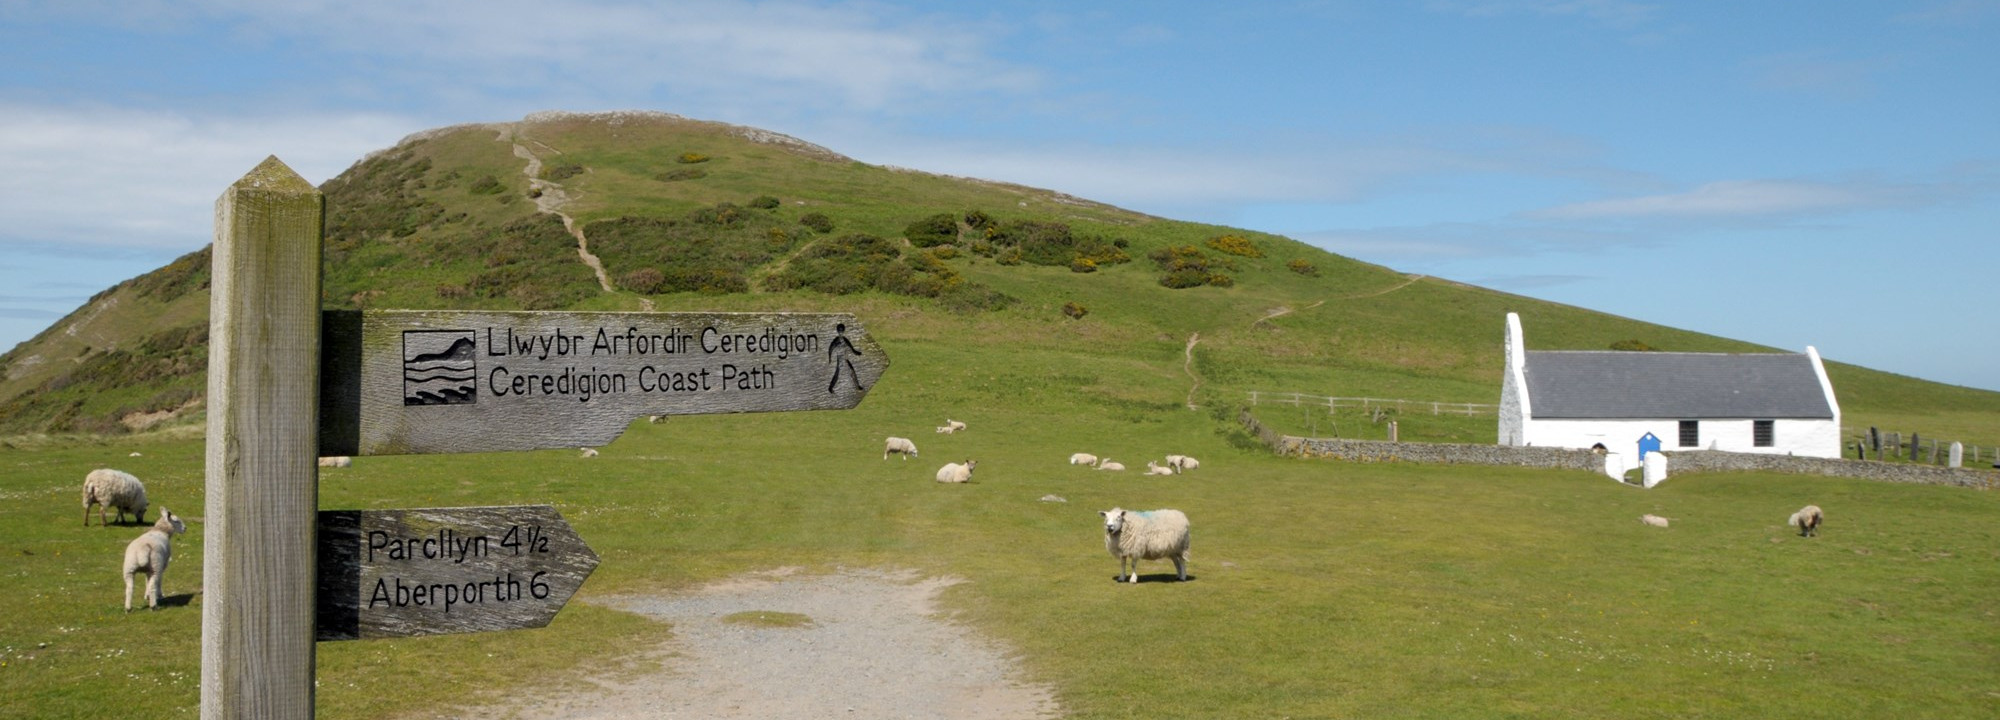 Signpost on the Ceredigion Way